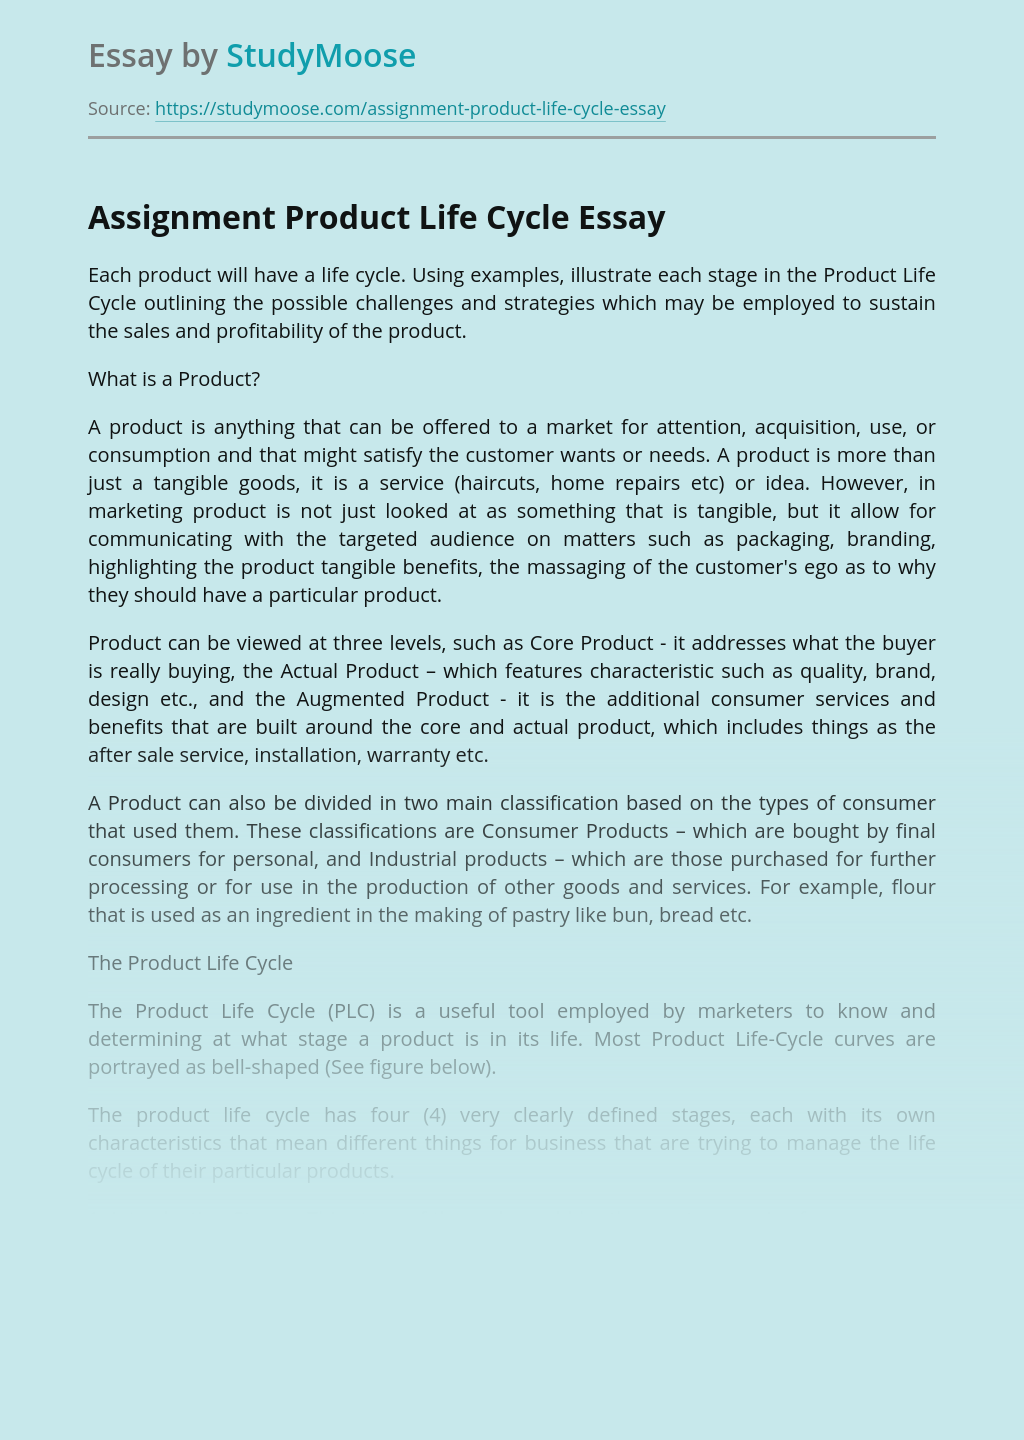 Assignment Product Life Cycle